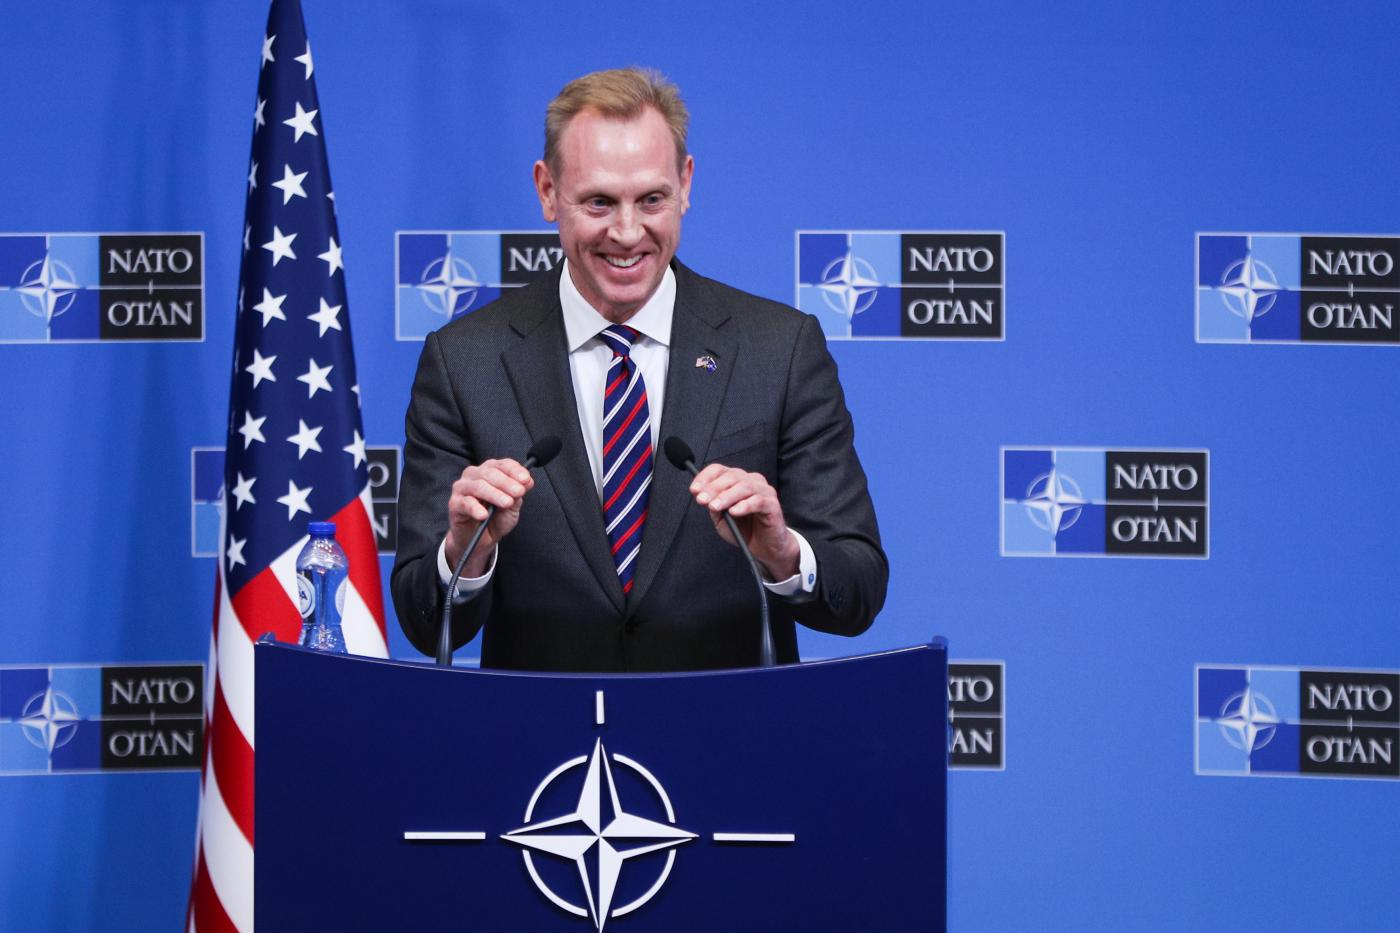 BELGIUM-BRUSSELS-NATO-PRESS CONFERENCE by Zheng Huansong.